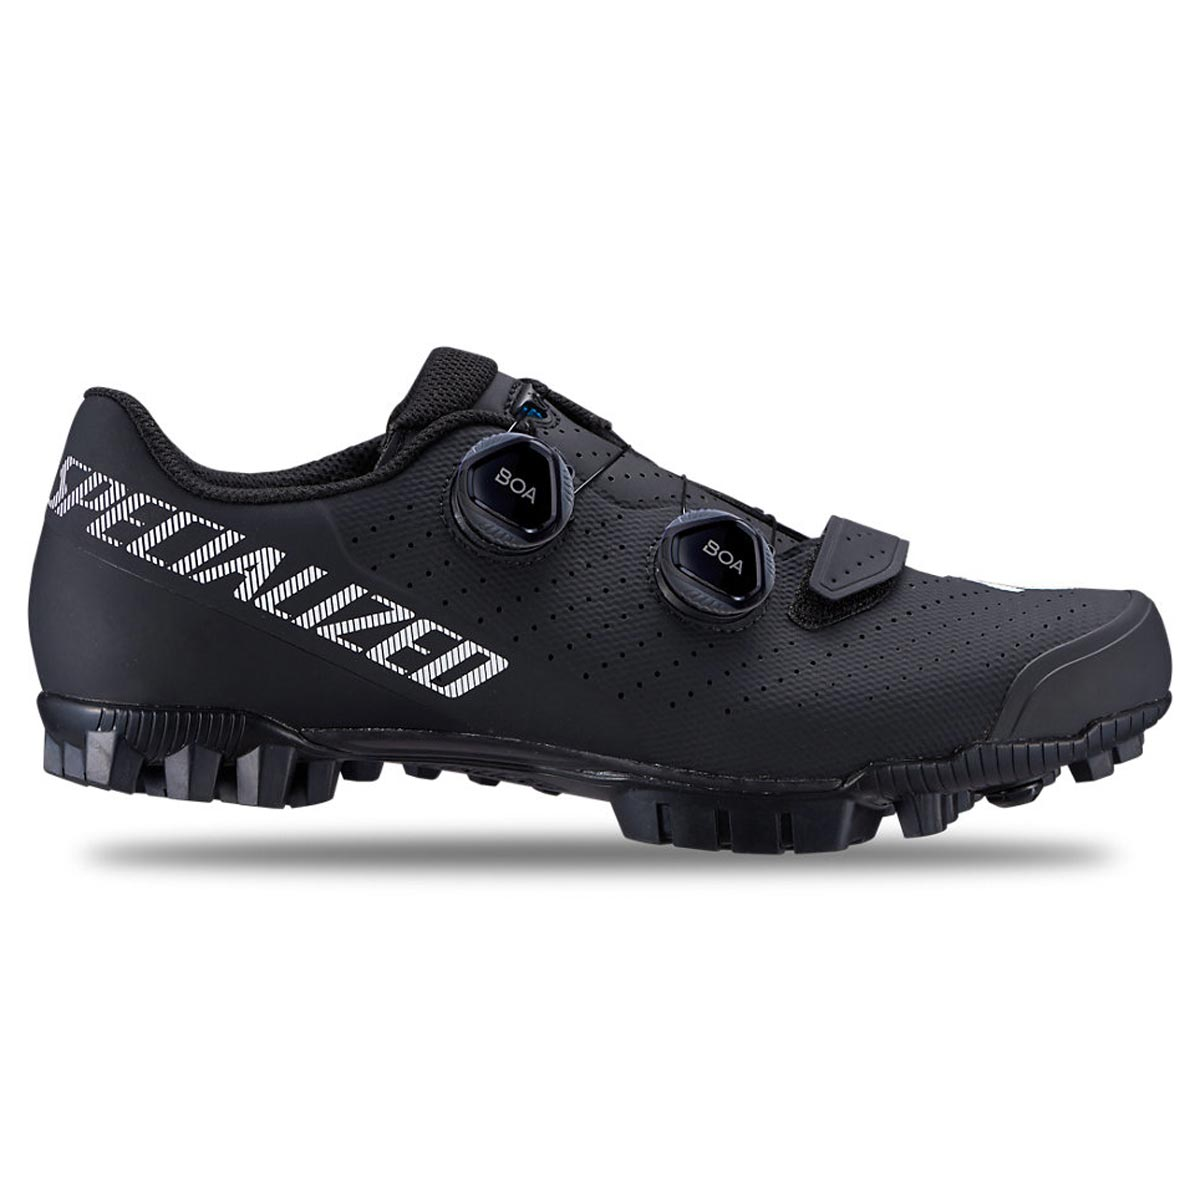 Specialized Recon 3.0 MTB Shoe in Black